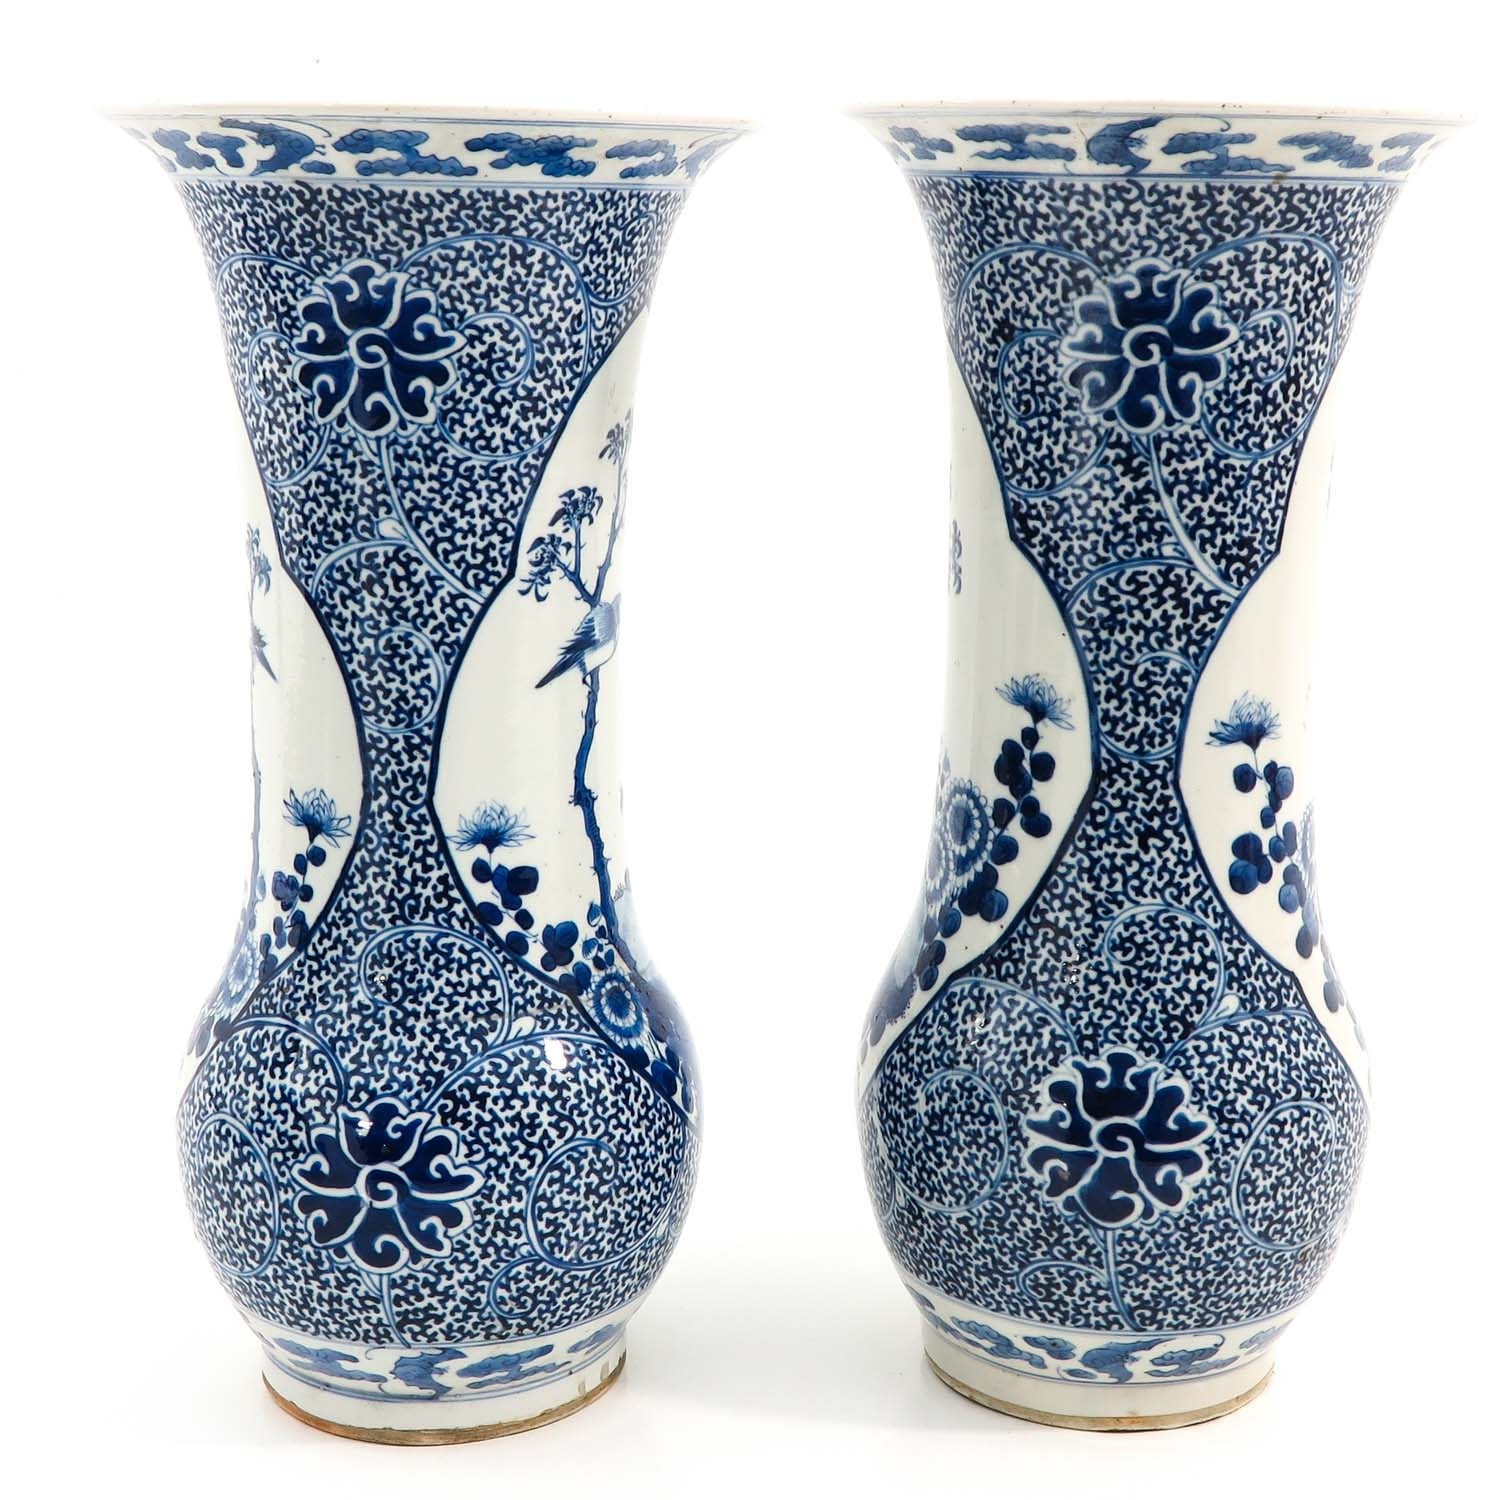 A Pair of Blue and White Vases - Image 4 of 10